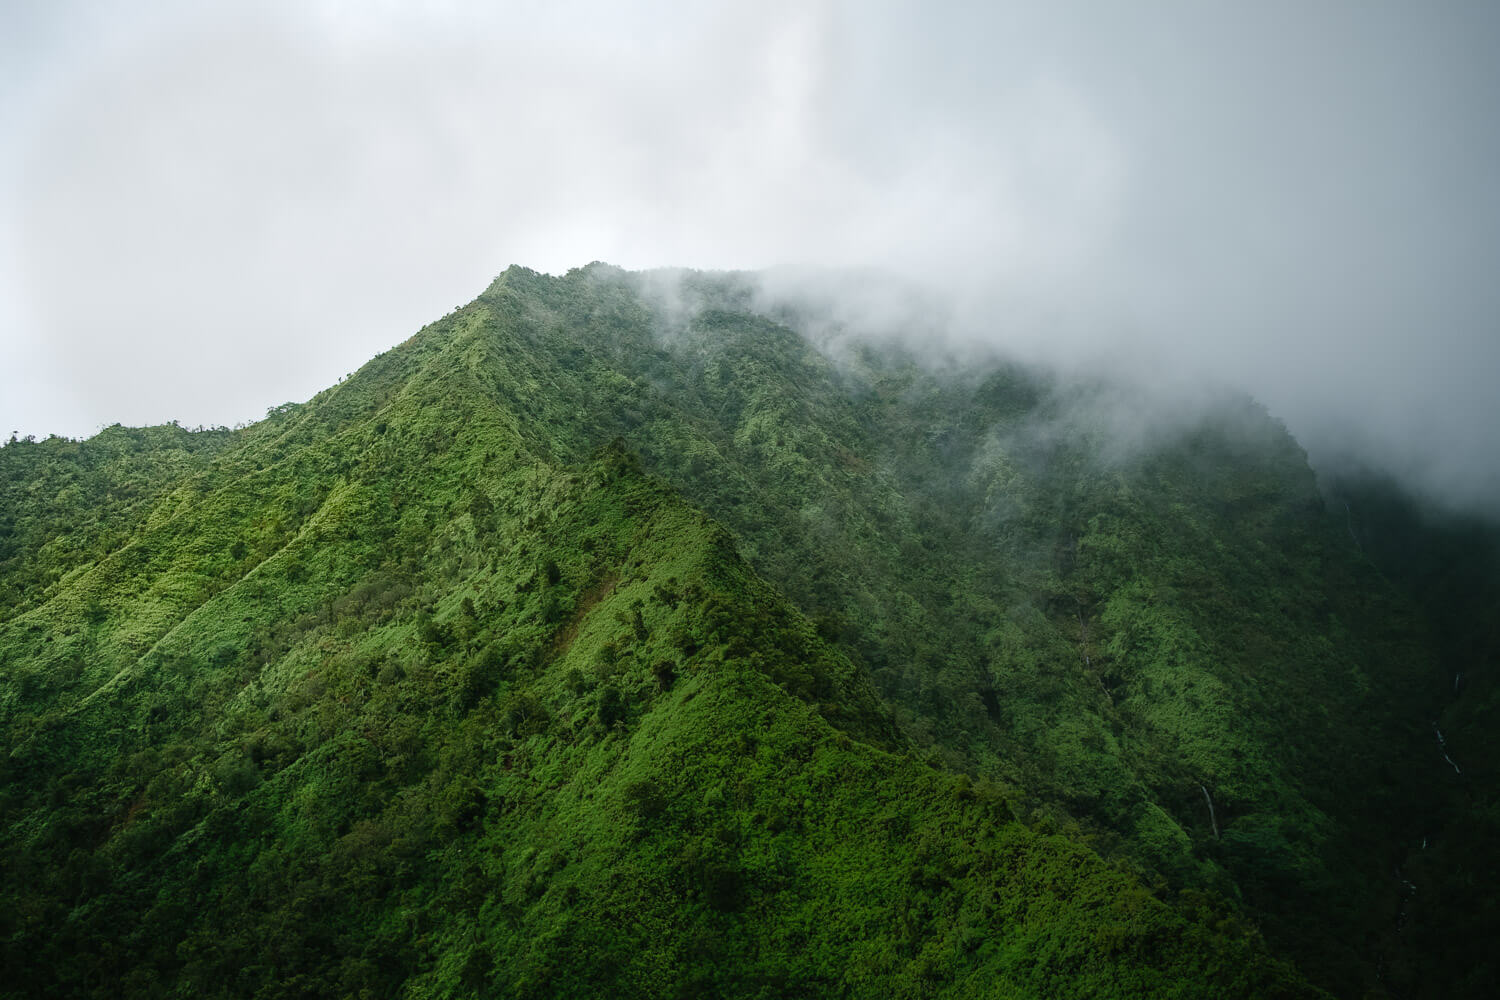 """Misty clouds in Kauai. Travel photography and guide by © Natasha Lequepeys for """"And Then I Met Yoko"""". #hawaii #travelguide #photoblog #travelblog #landscapephotography #fujifilm"""